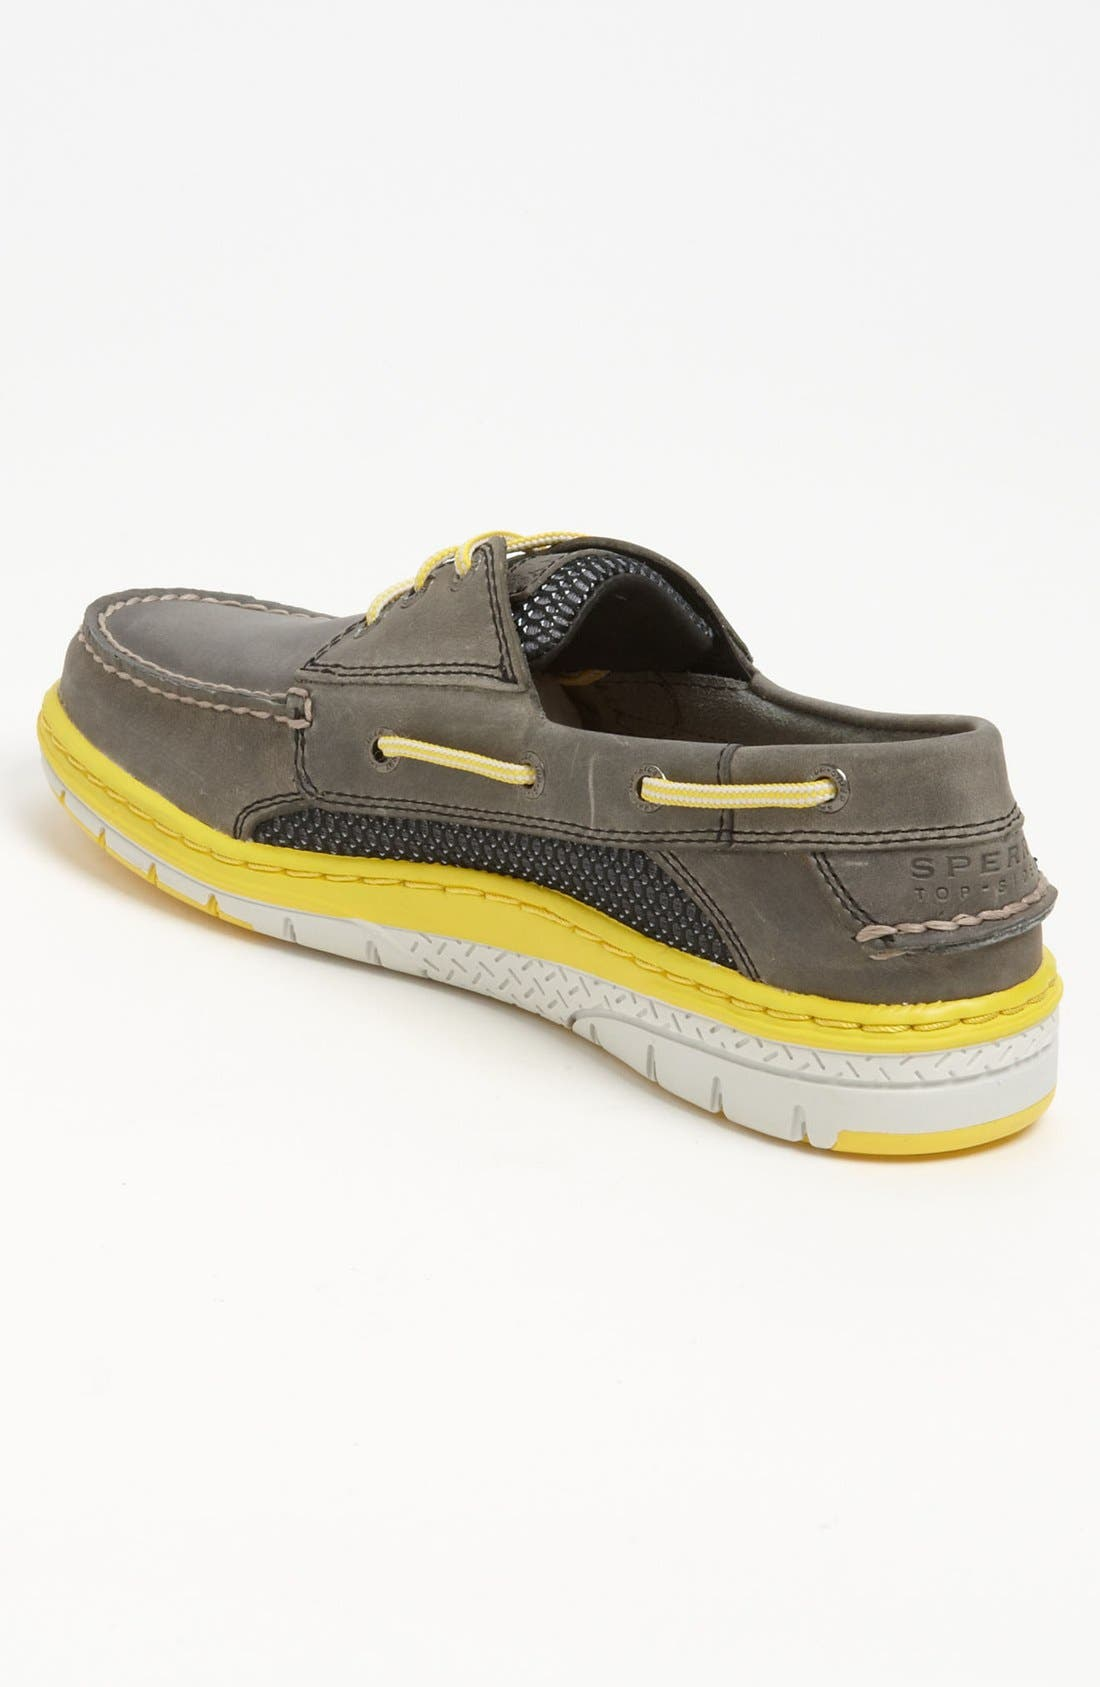 'Billfish Ultralite' Boat Shoe,                             Alternate thumbnail 44, color,